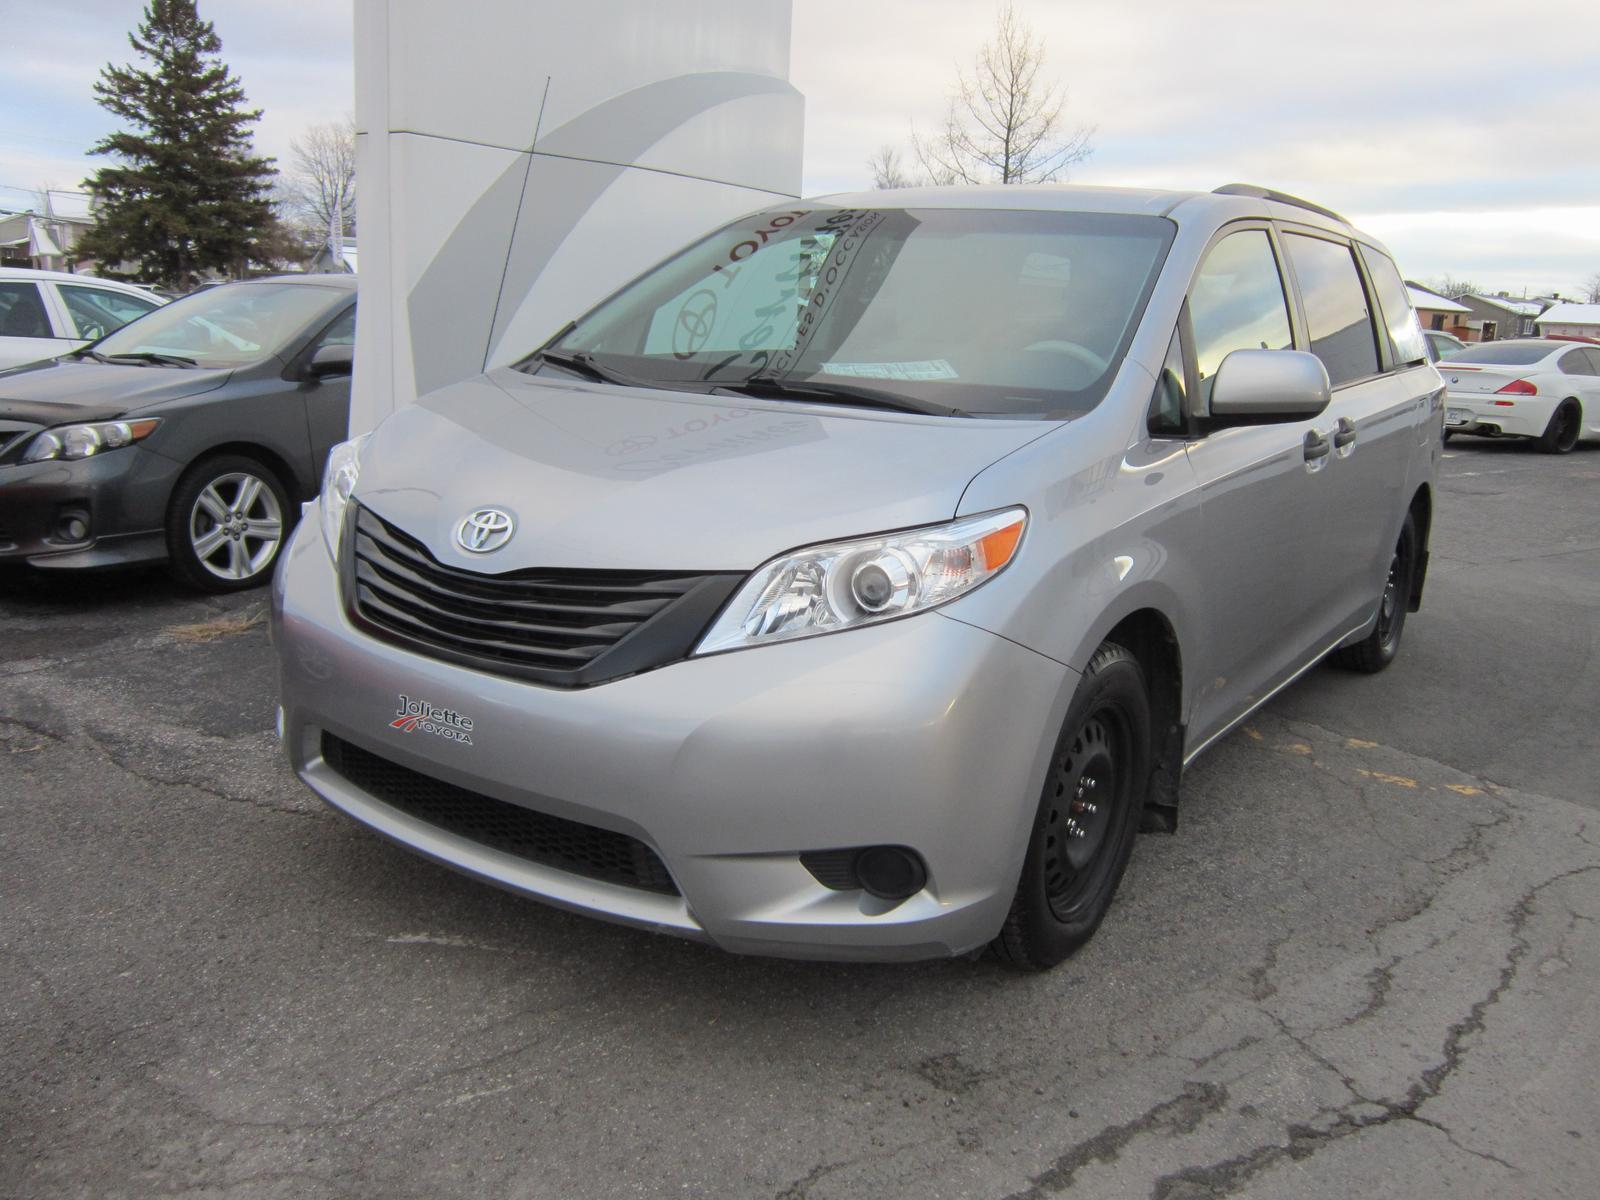 Beautiful  Toyota A 2004 Toyota Sienna XLE LTD AWD Is Shown AP PhotoToyota